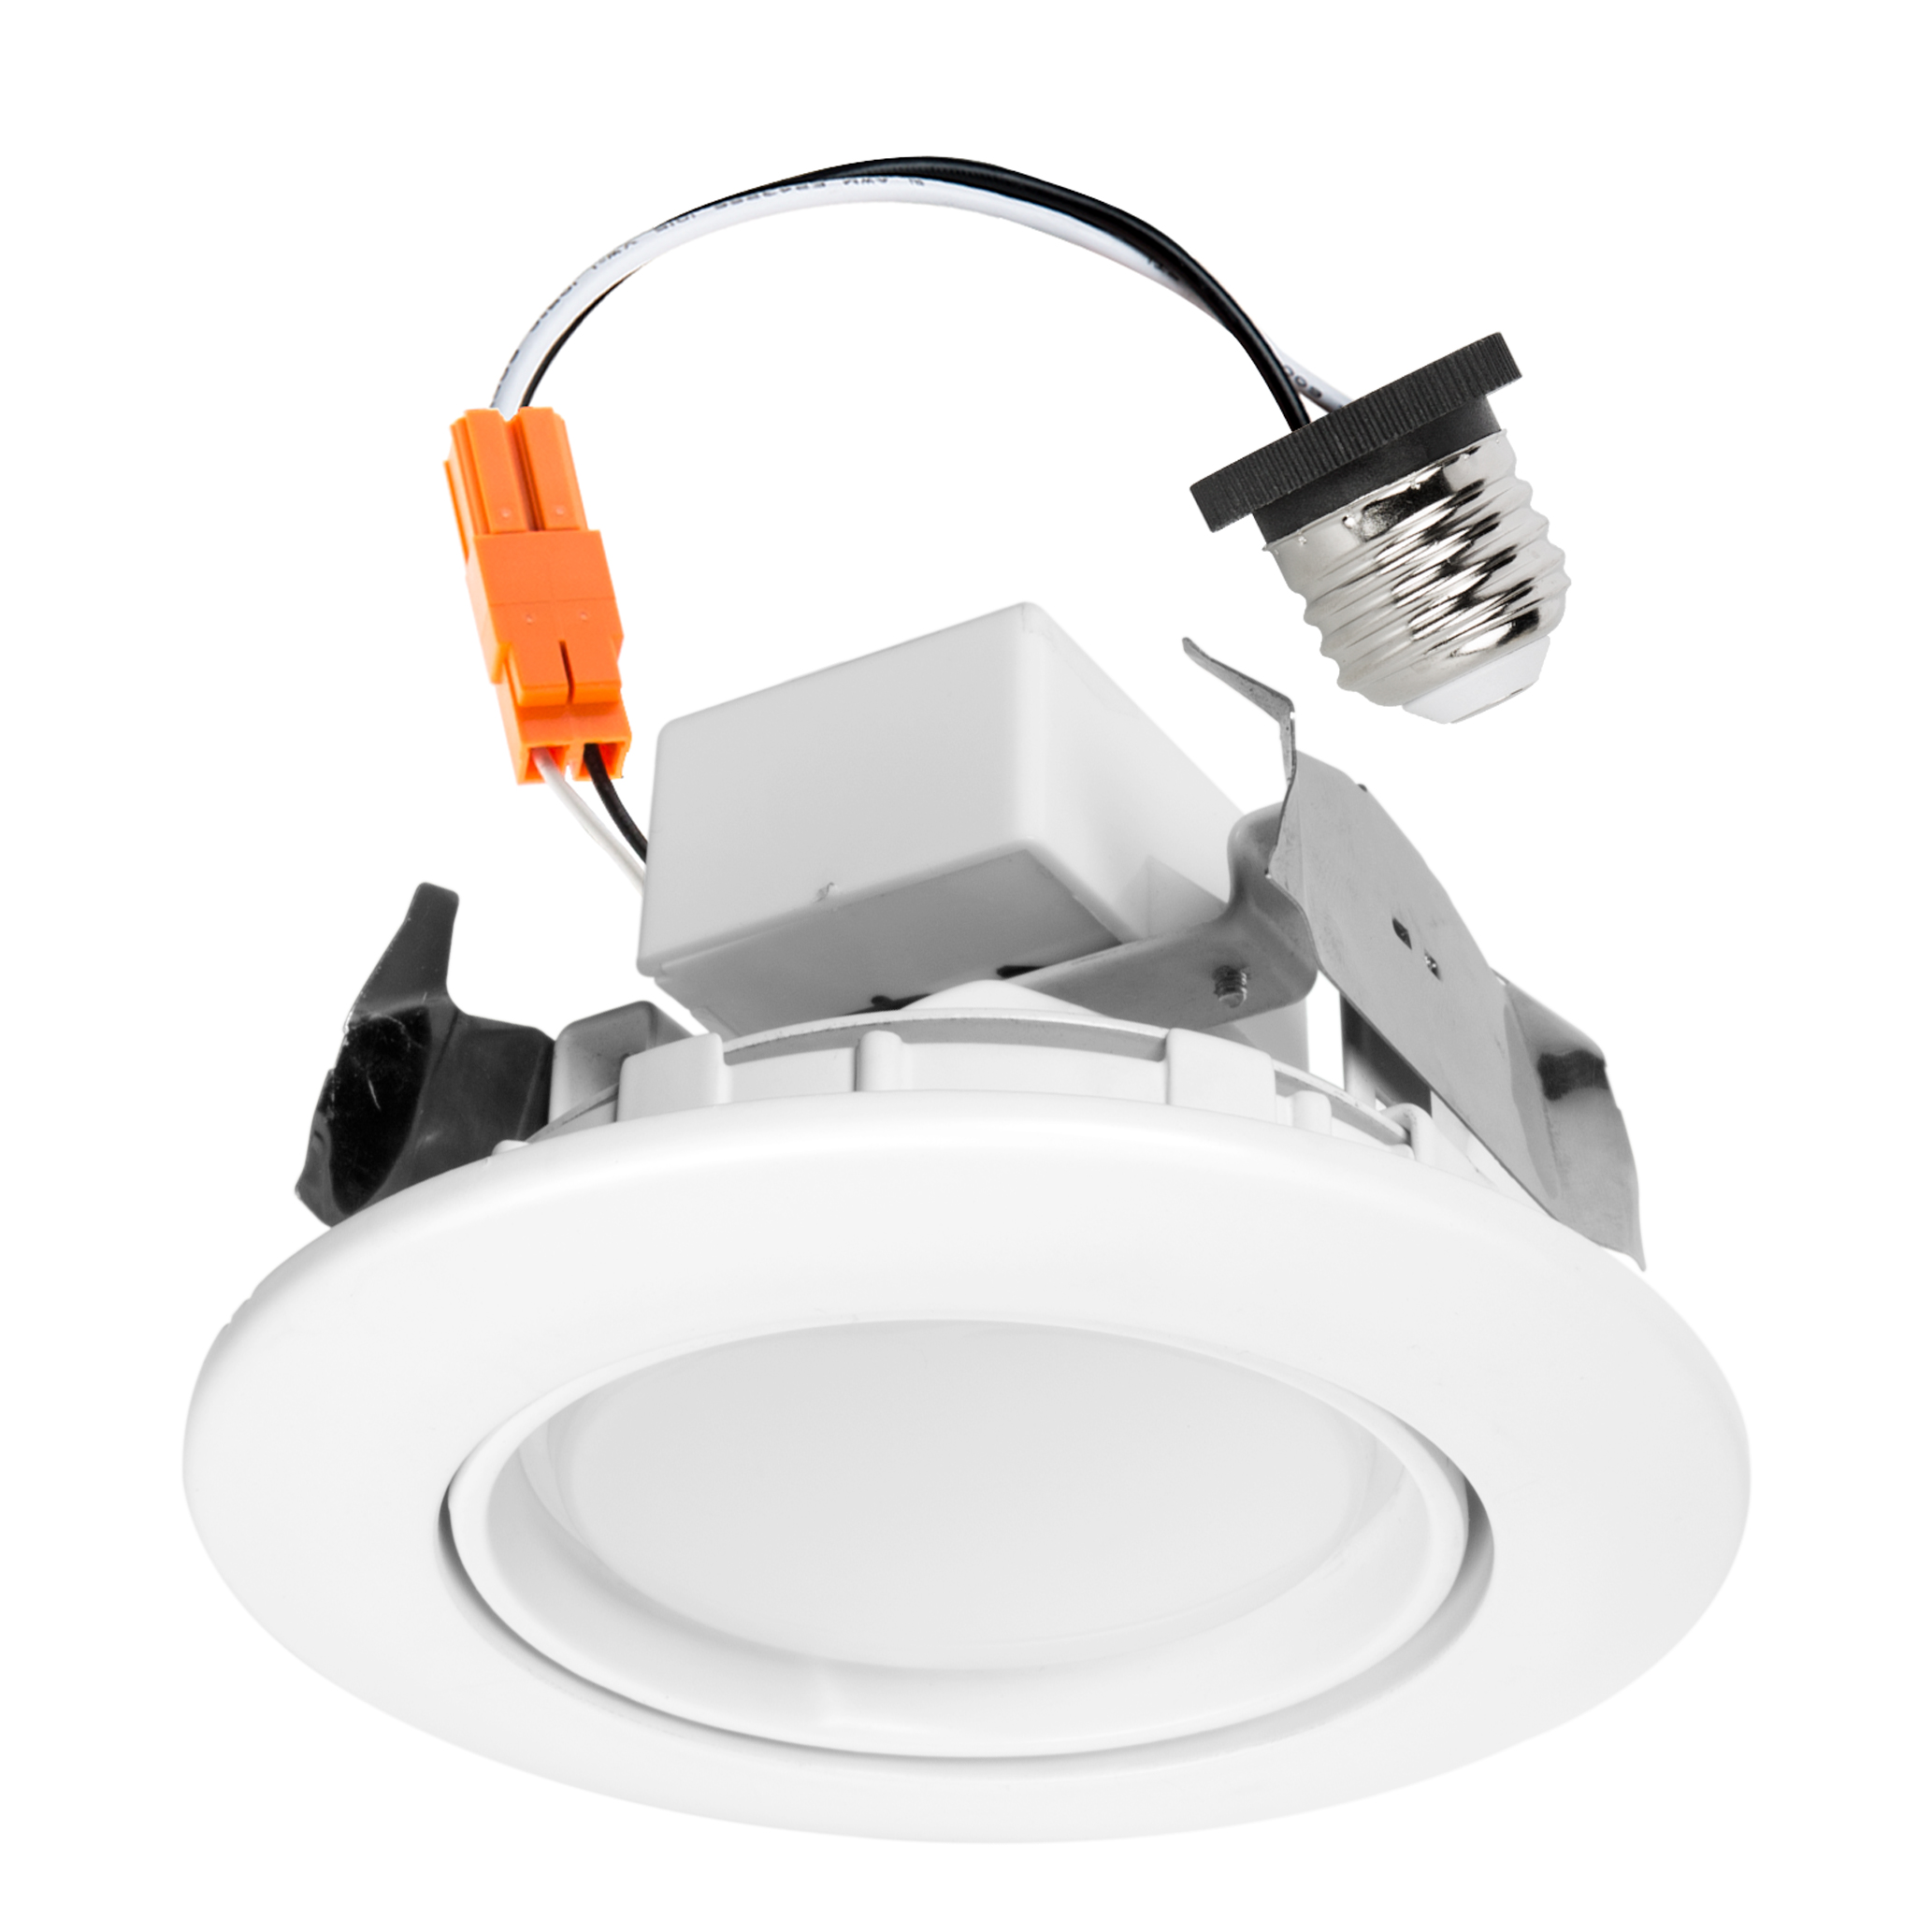 Led Recessed Lighting Kit For 4 Cans Retrofit Led Downlight W Gimbal Trim 60 Watt Equivalent Dimmable 670 Lumens Super Bright Leds